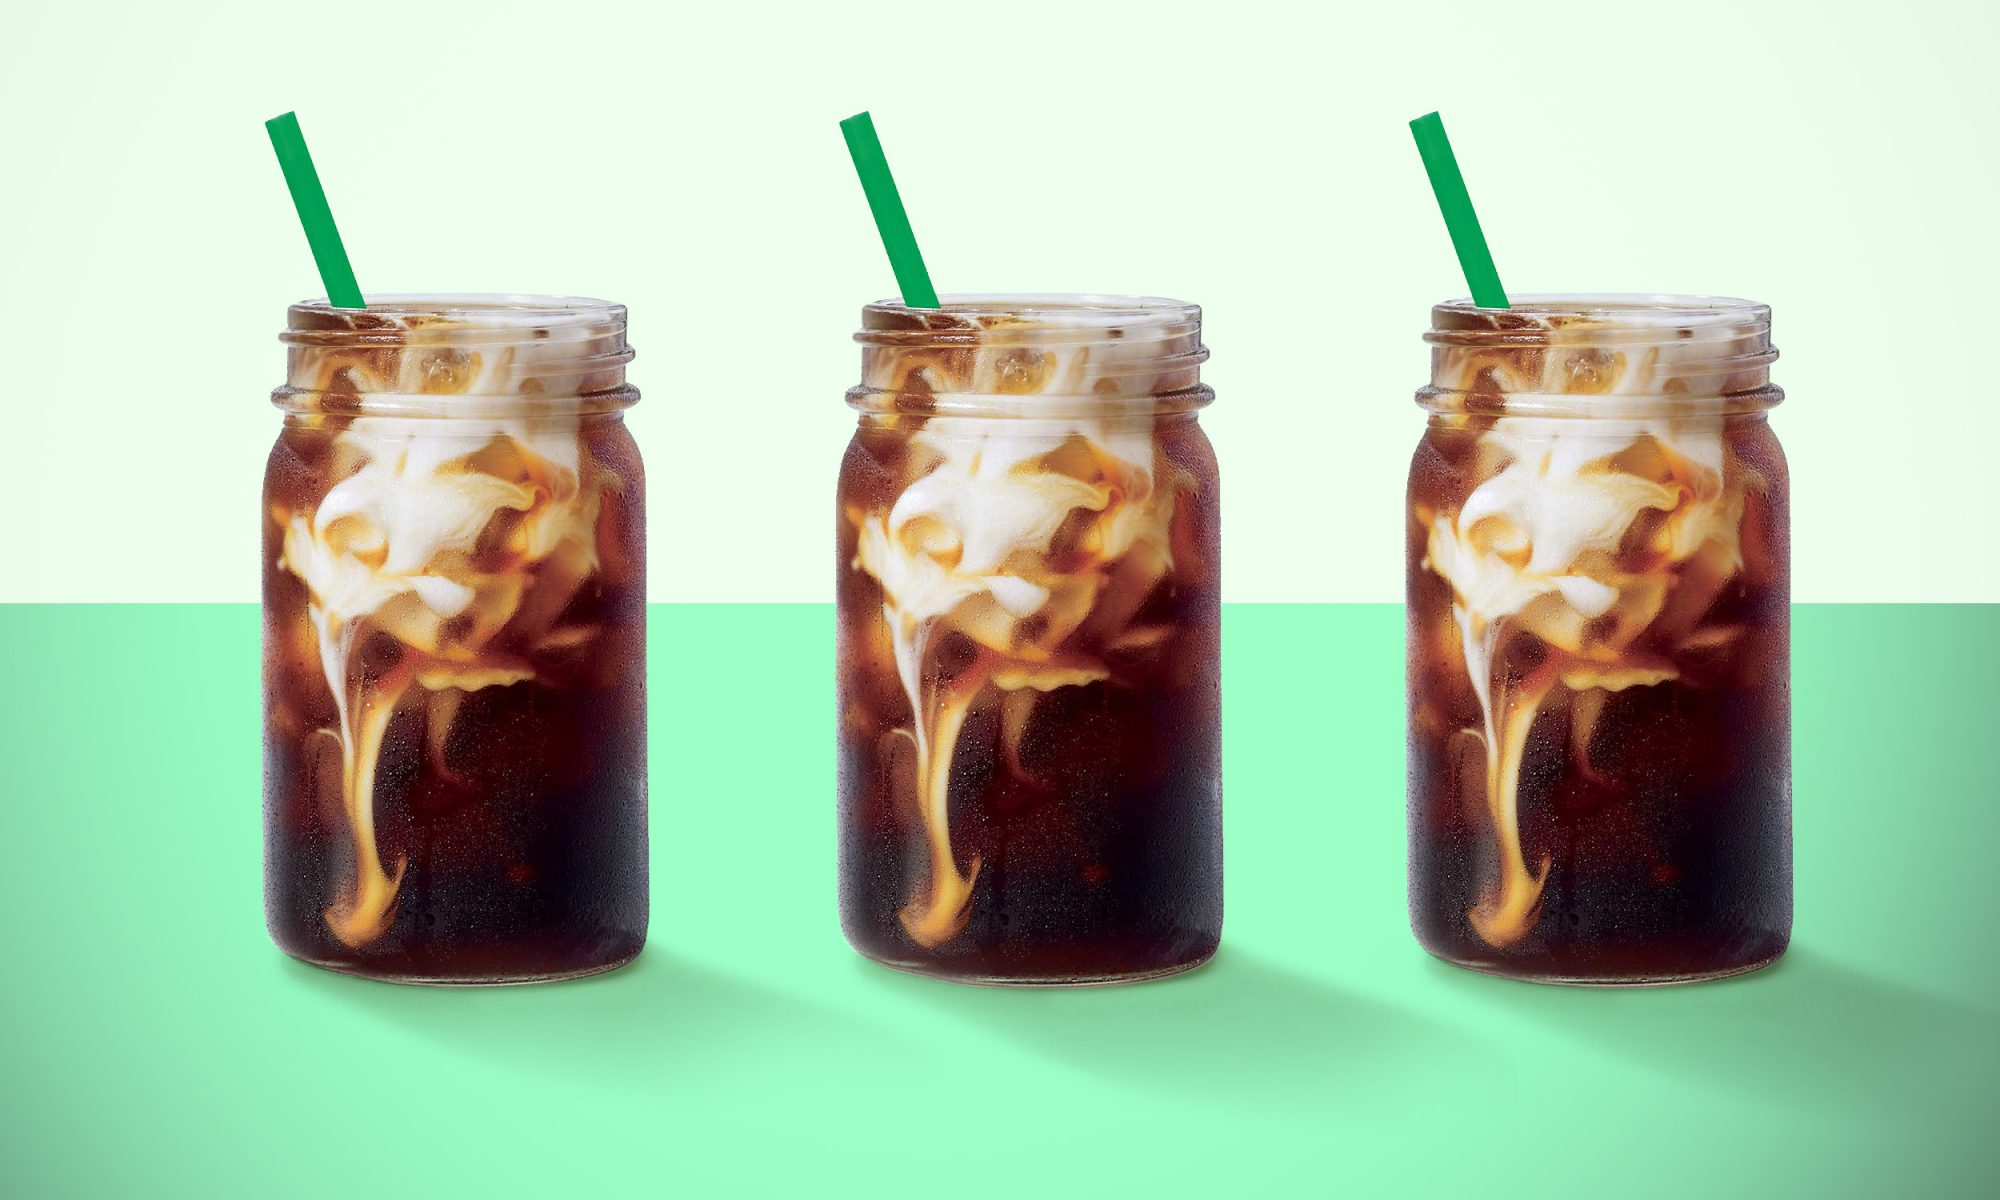 EC: This New Starbucks Drink Is Coconut-Flavored Cold Brew